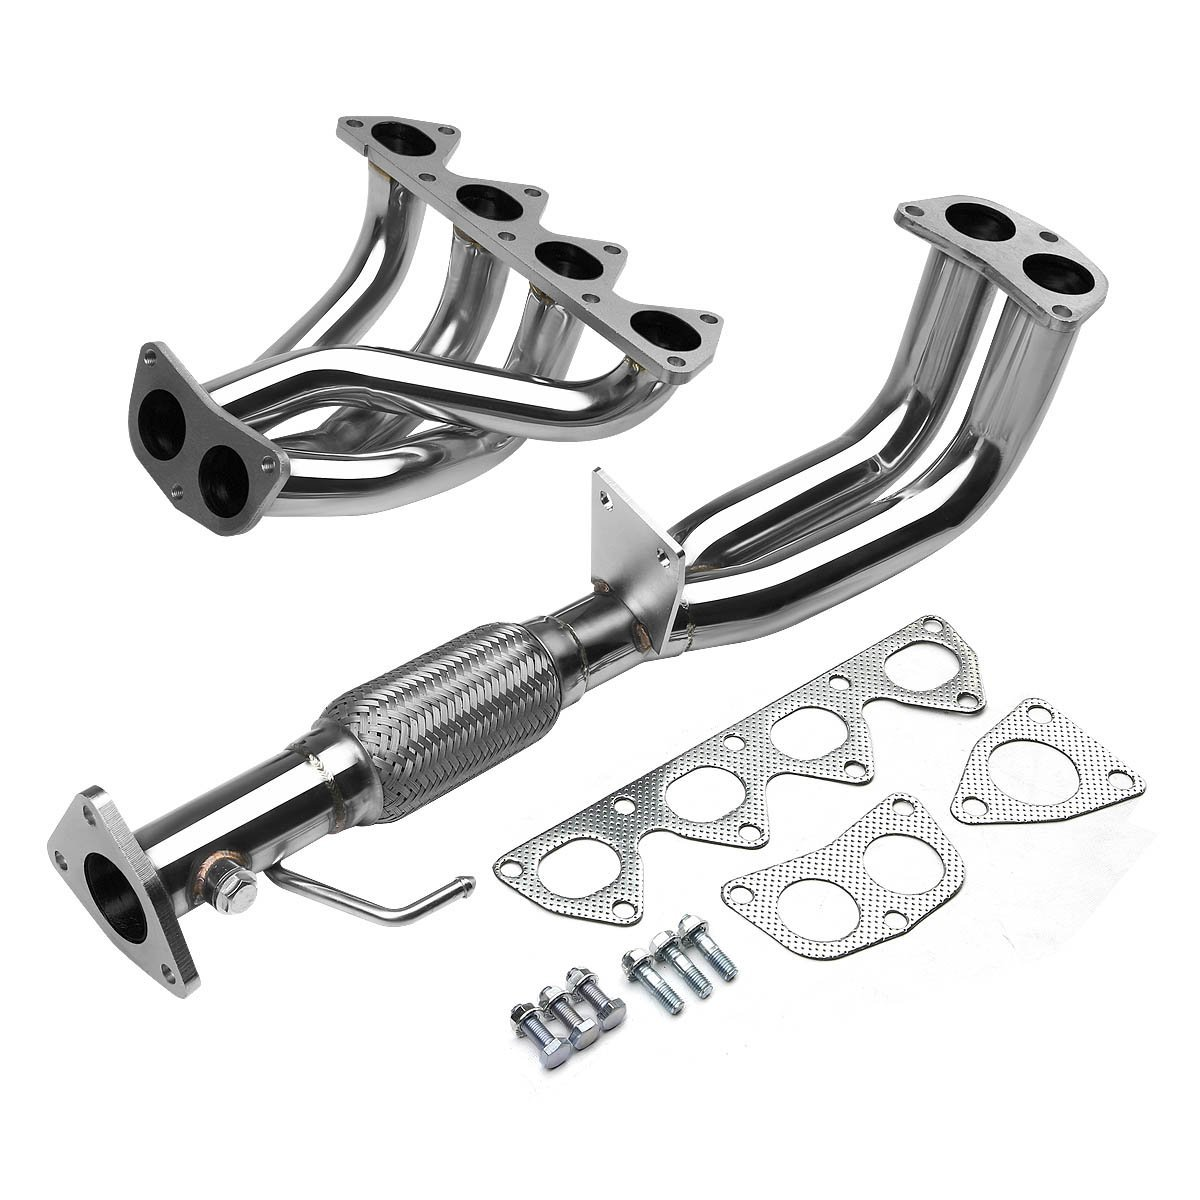 97 01 honda prelude non sh h22a44 2 1 stainless racing manifold header exhaust high flow test pipe. Black Bedroom Furniture Sets. Home Design Ideas